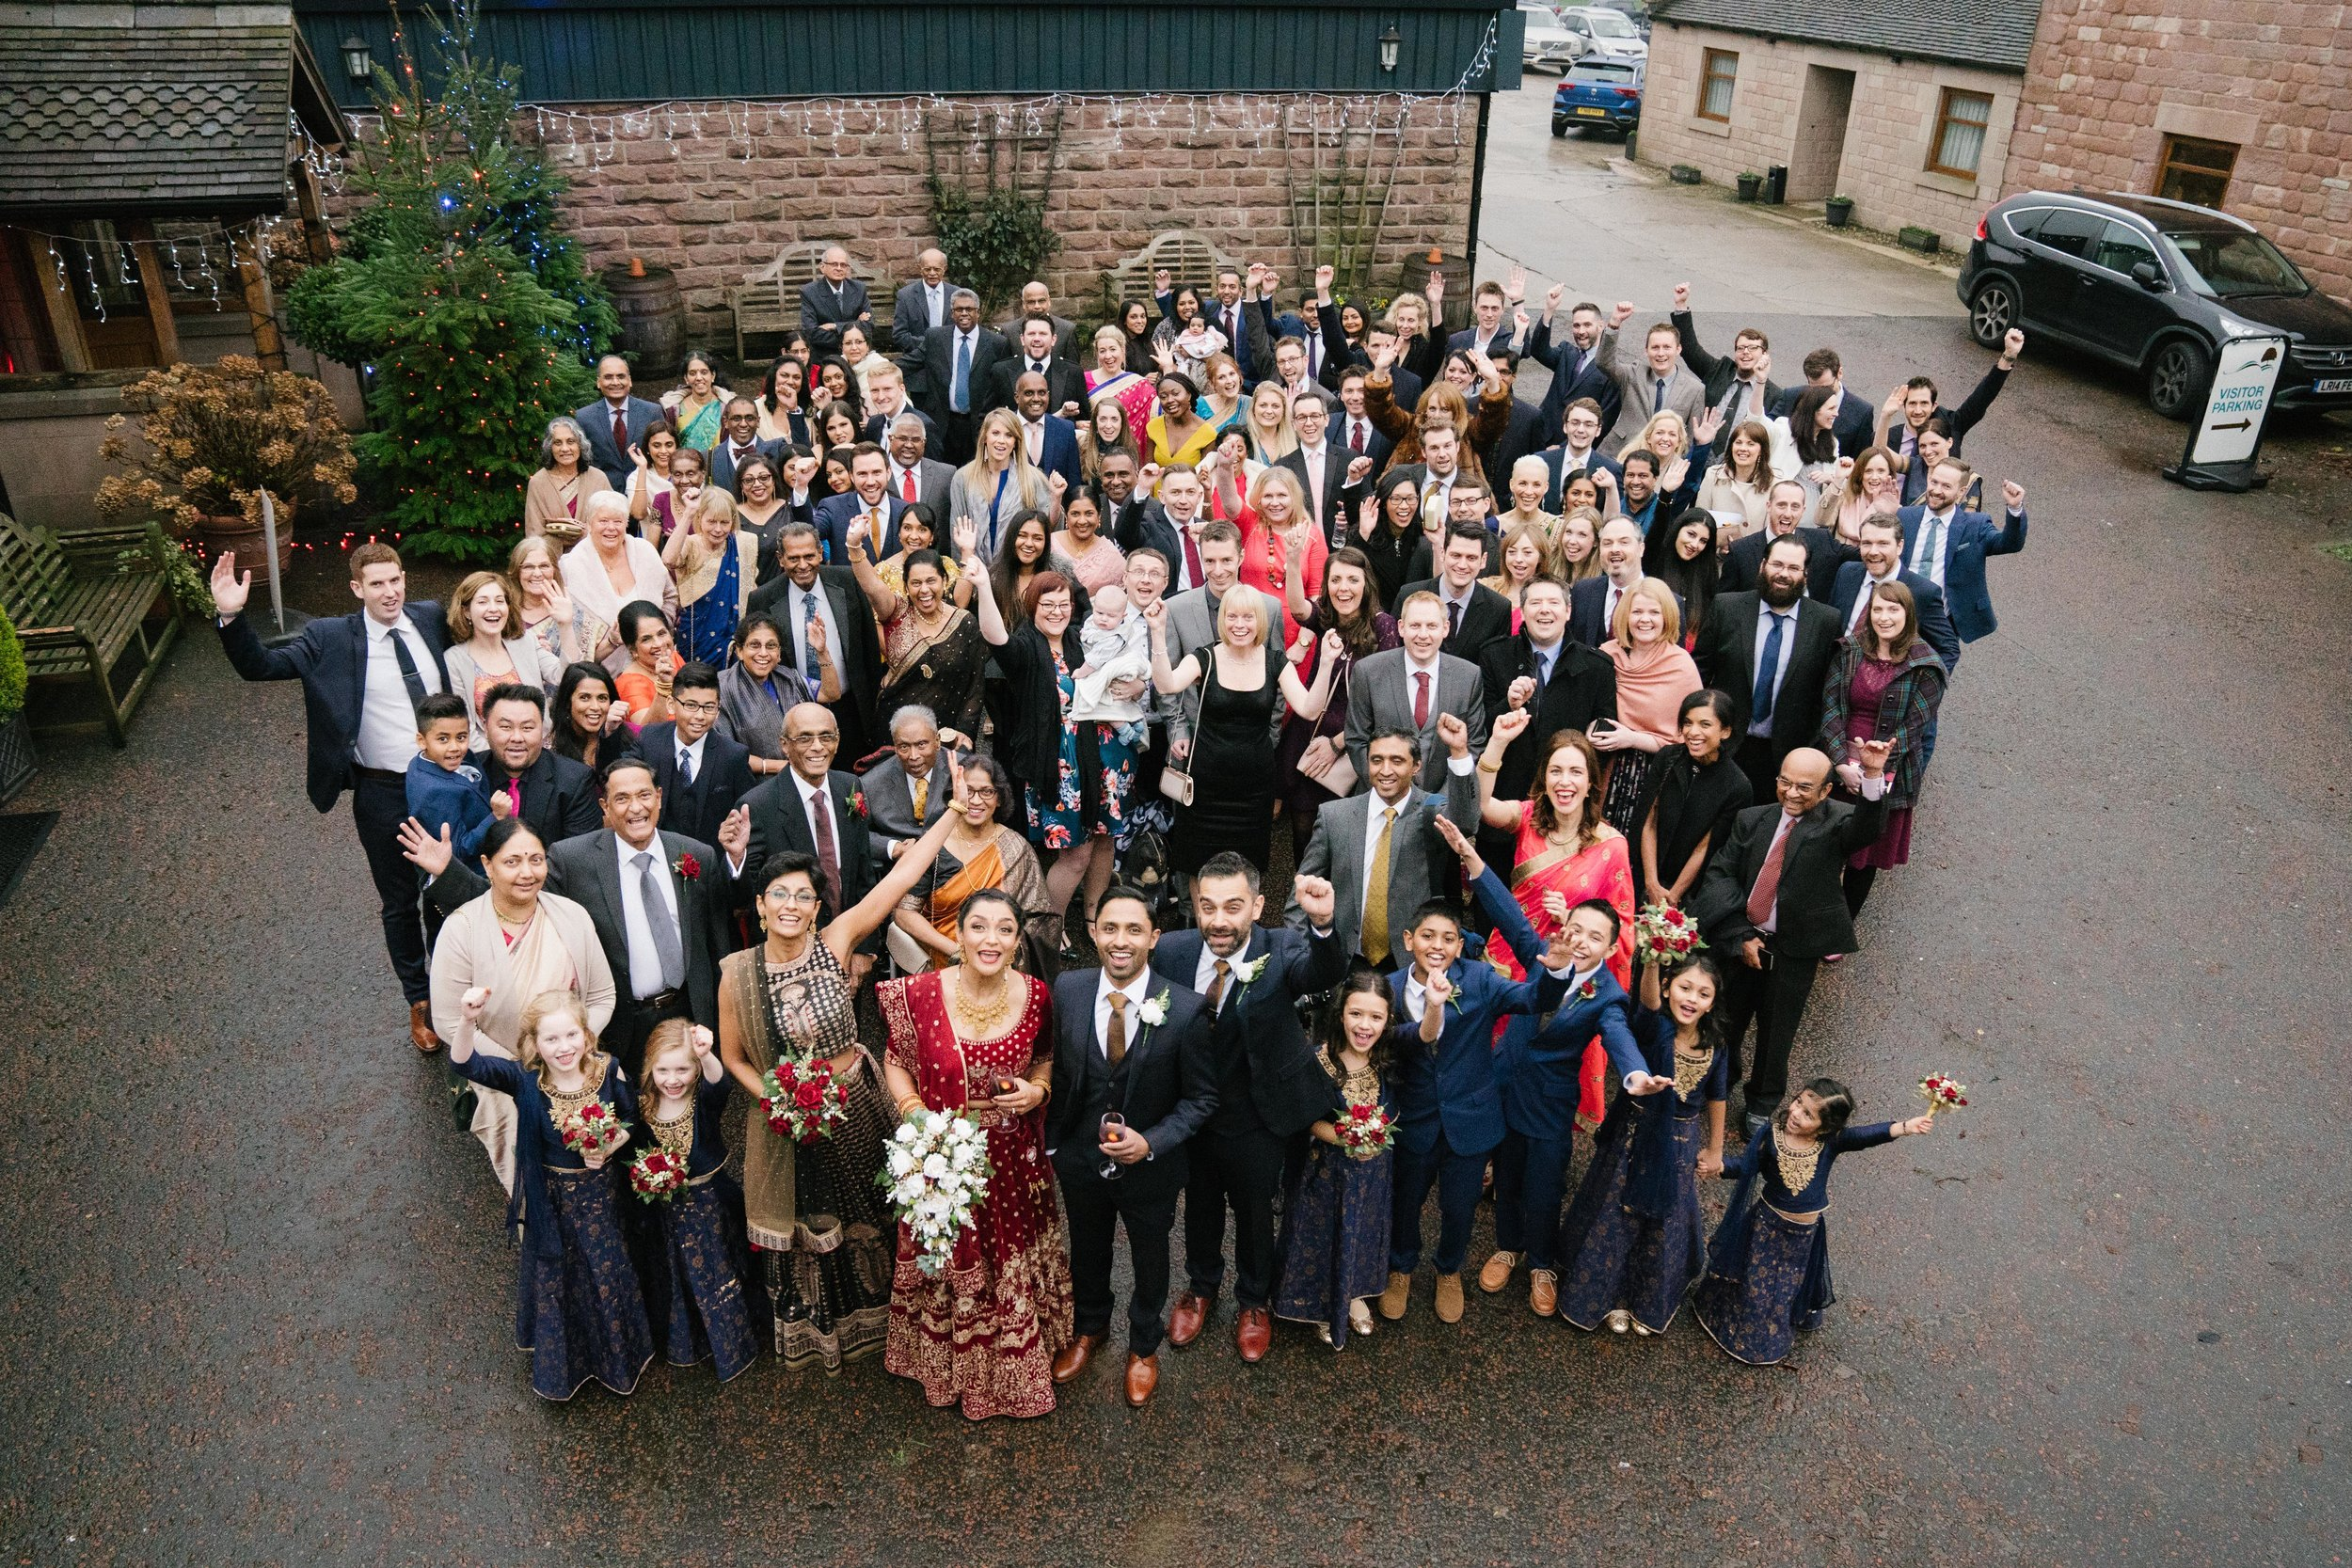 christmas-winter-wedding-photography-videography-heaton-house-43